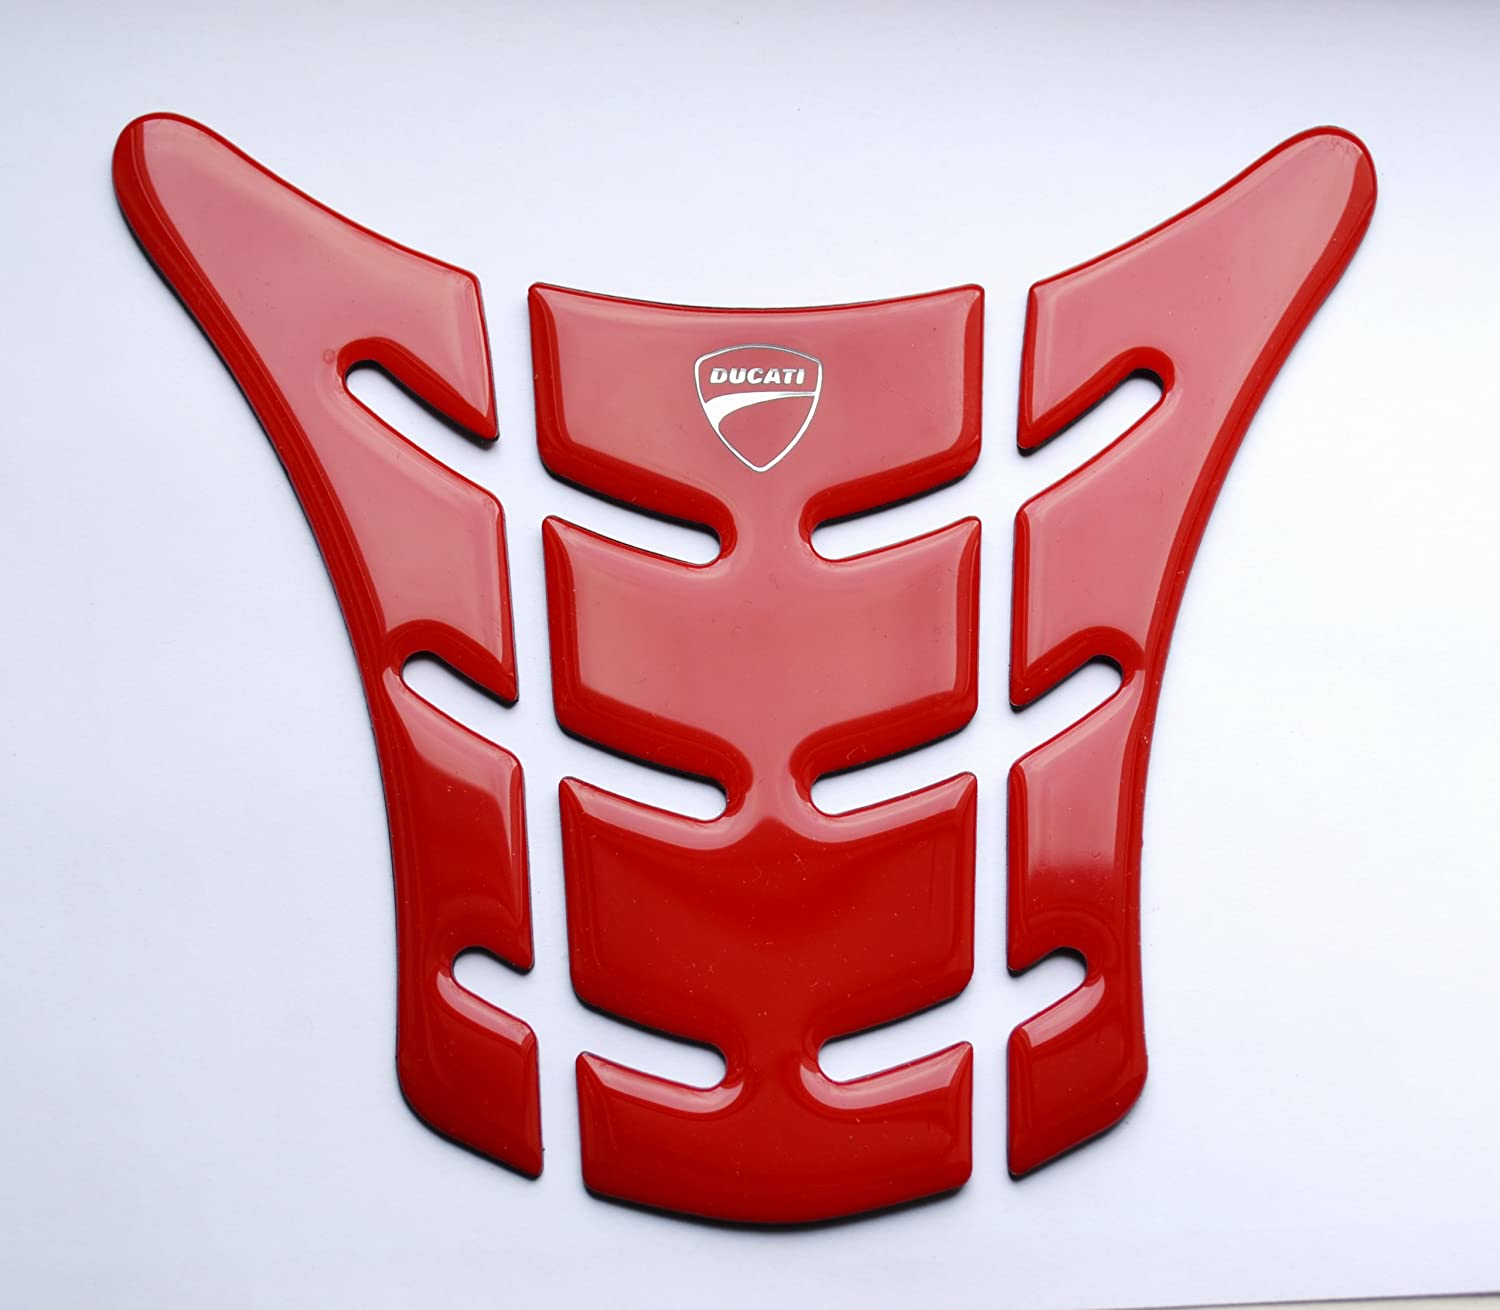 Red Plastic Motorcycle Tank Protector Pad for Ducati Monster 696 796 1100